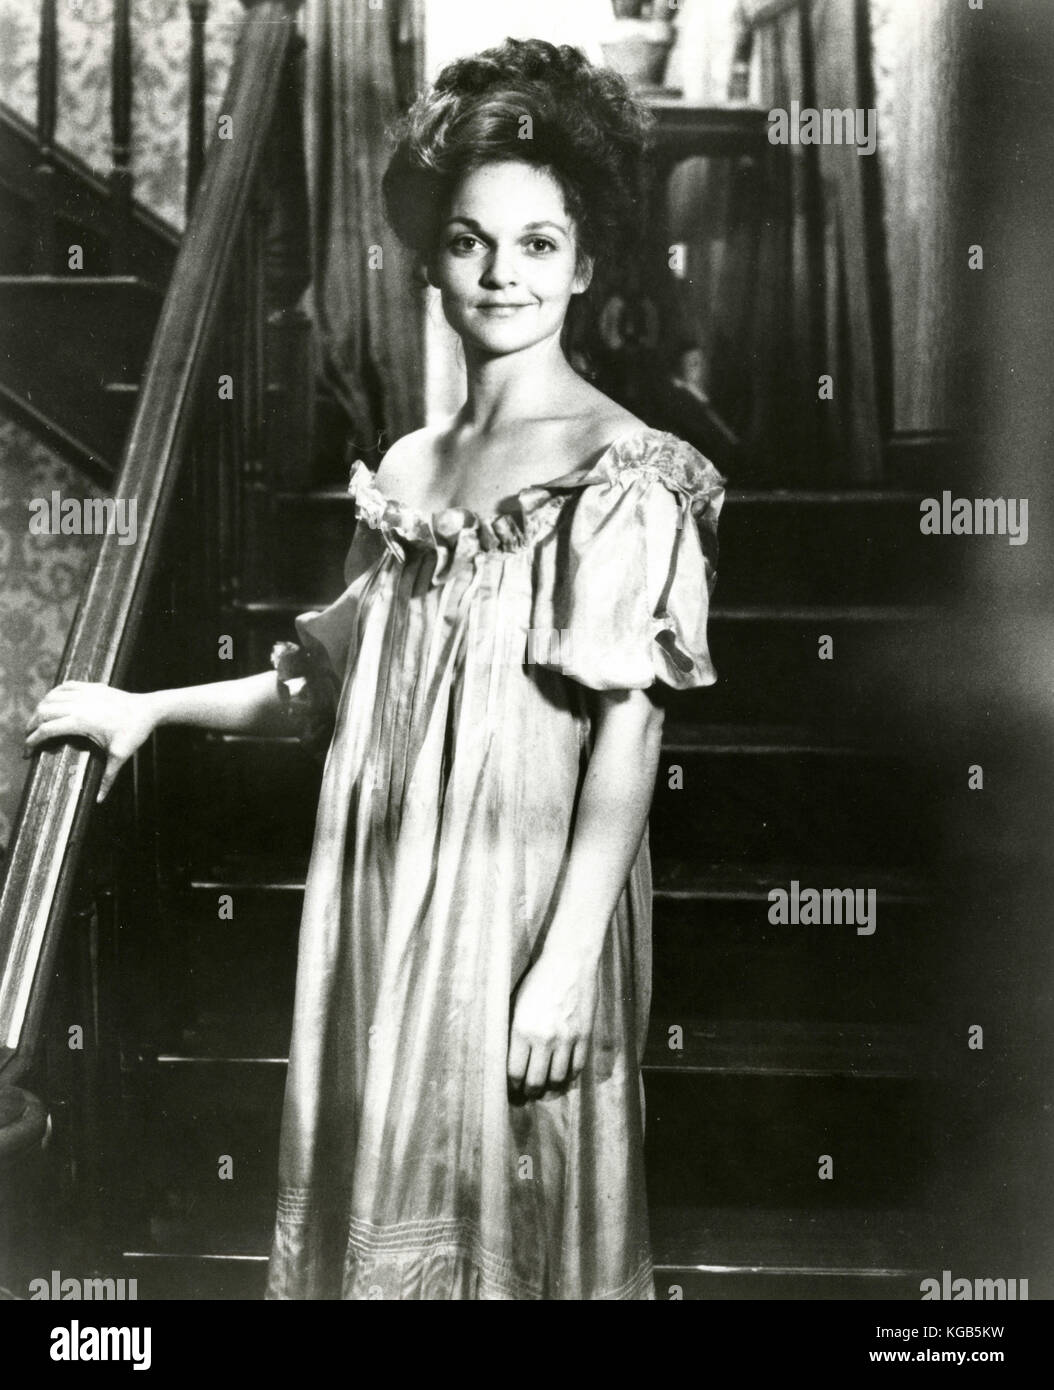 Actress Pamela Reed in the movie The Long Riders, 1980 - Stock Image